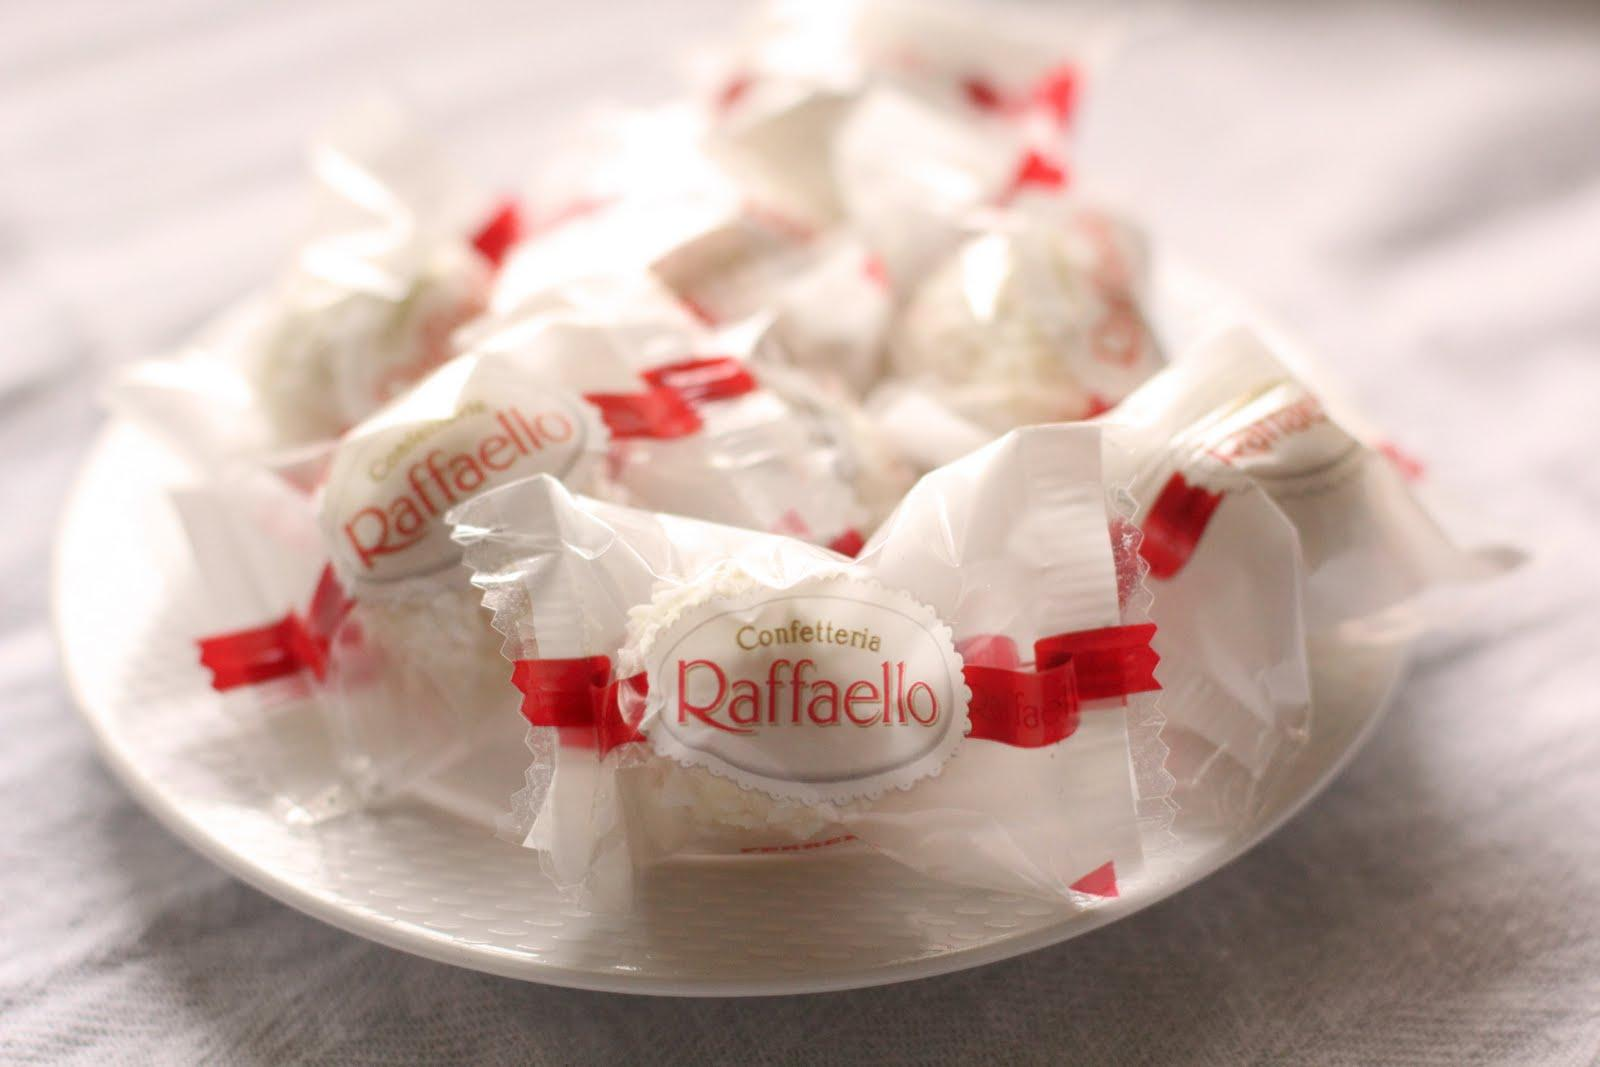 Amazon.com : Ferrero Raffaello, 15 Count (Pack of 6) : Chocolate And